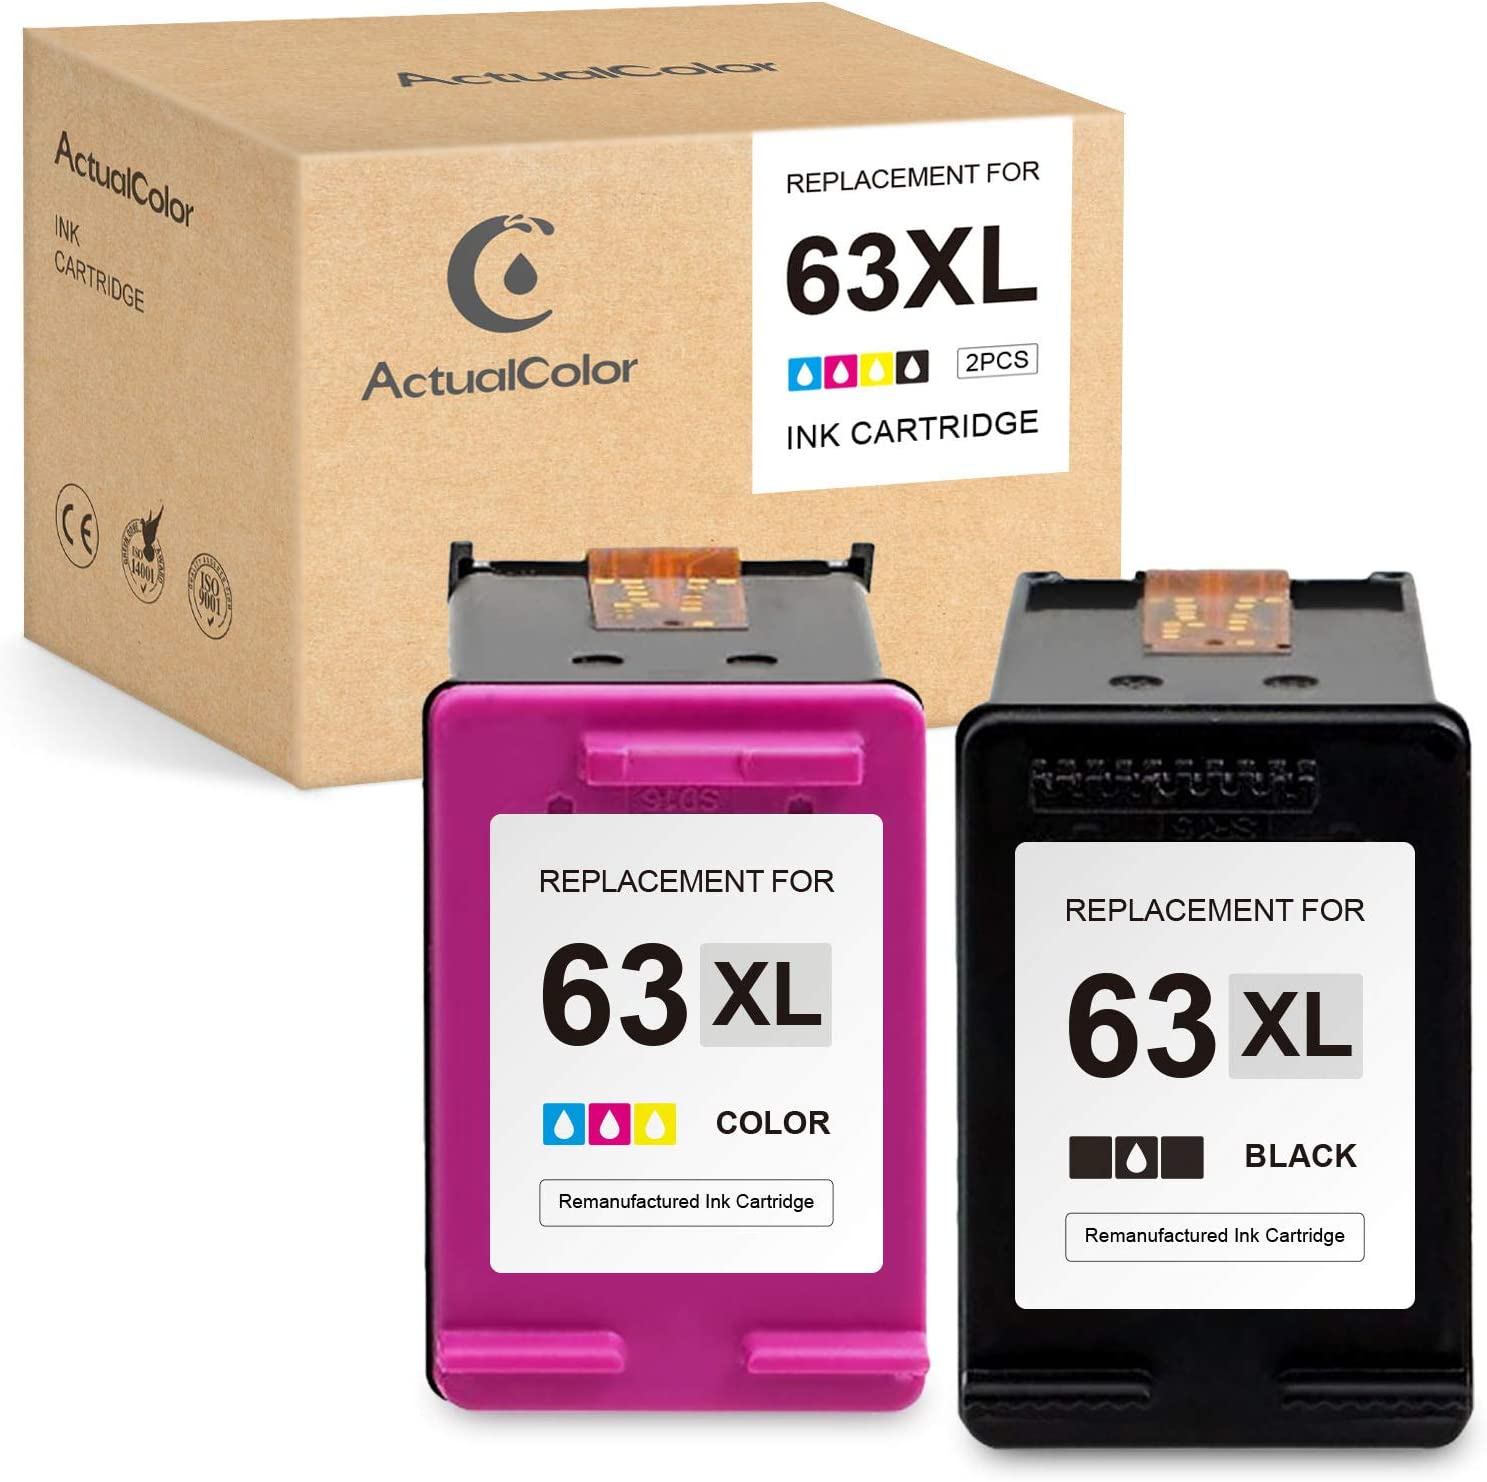 ActualColor C Remanufactured Ink Cartridge Replacement for HP 63 XL 63XL for Envy 4520 4512 OfficeJet 3830 5255 5258 4650 4652 4655 3833 DeskJet 1112 2130 2132 3630 3632 3634 (1 Black,1 Tri-Color)